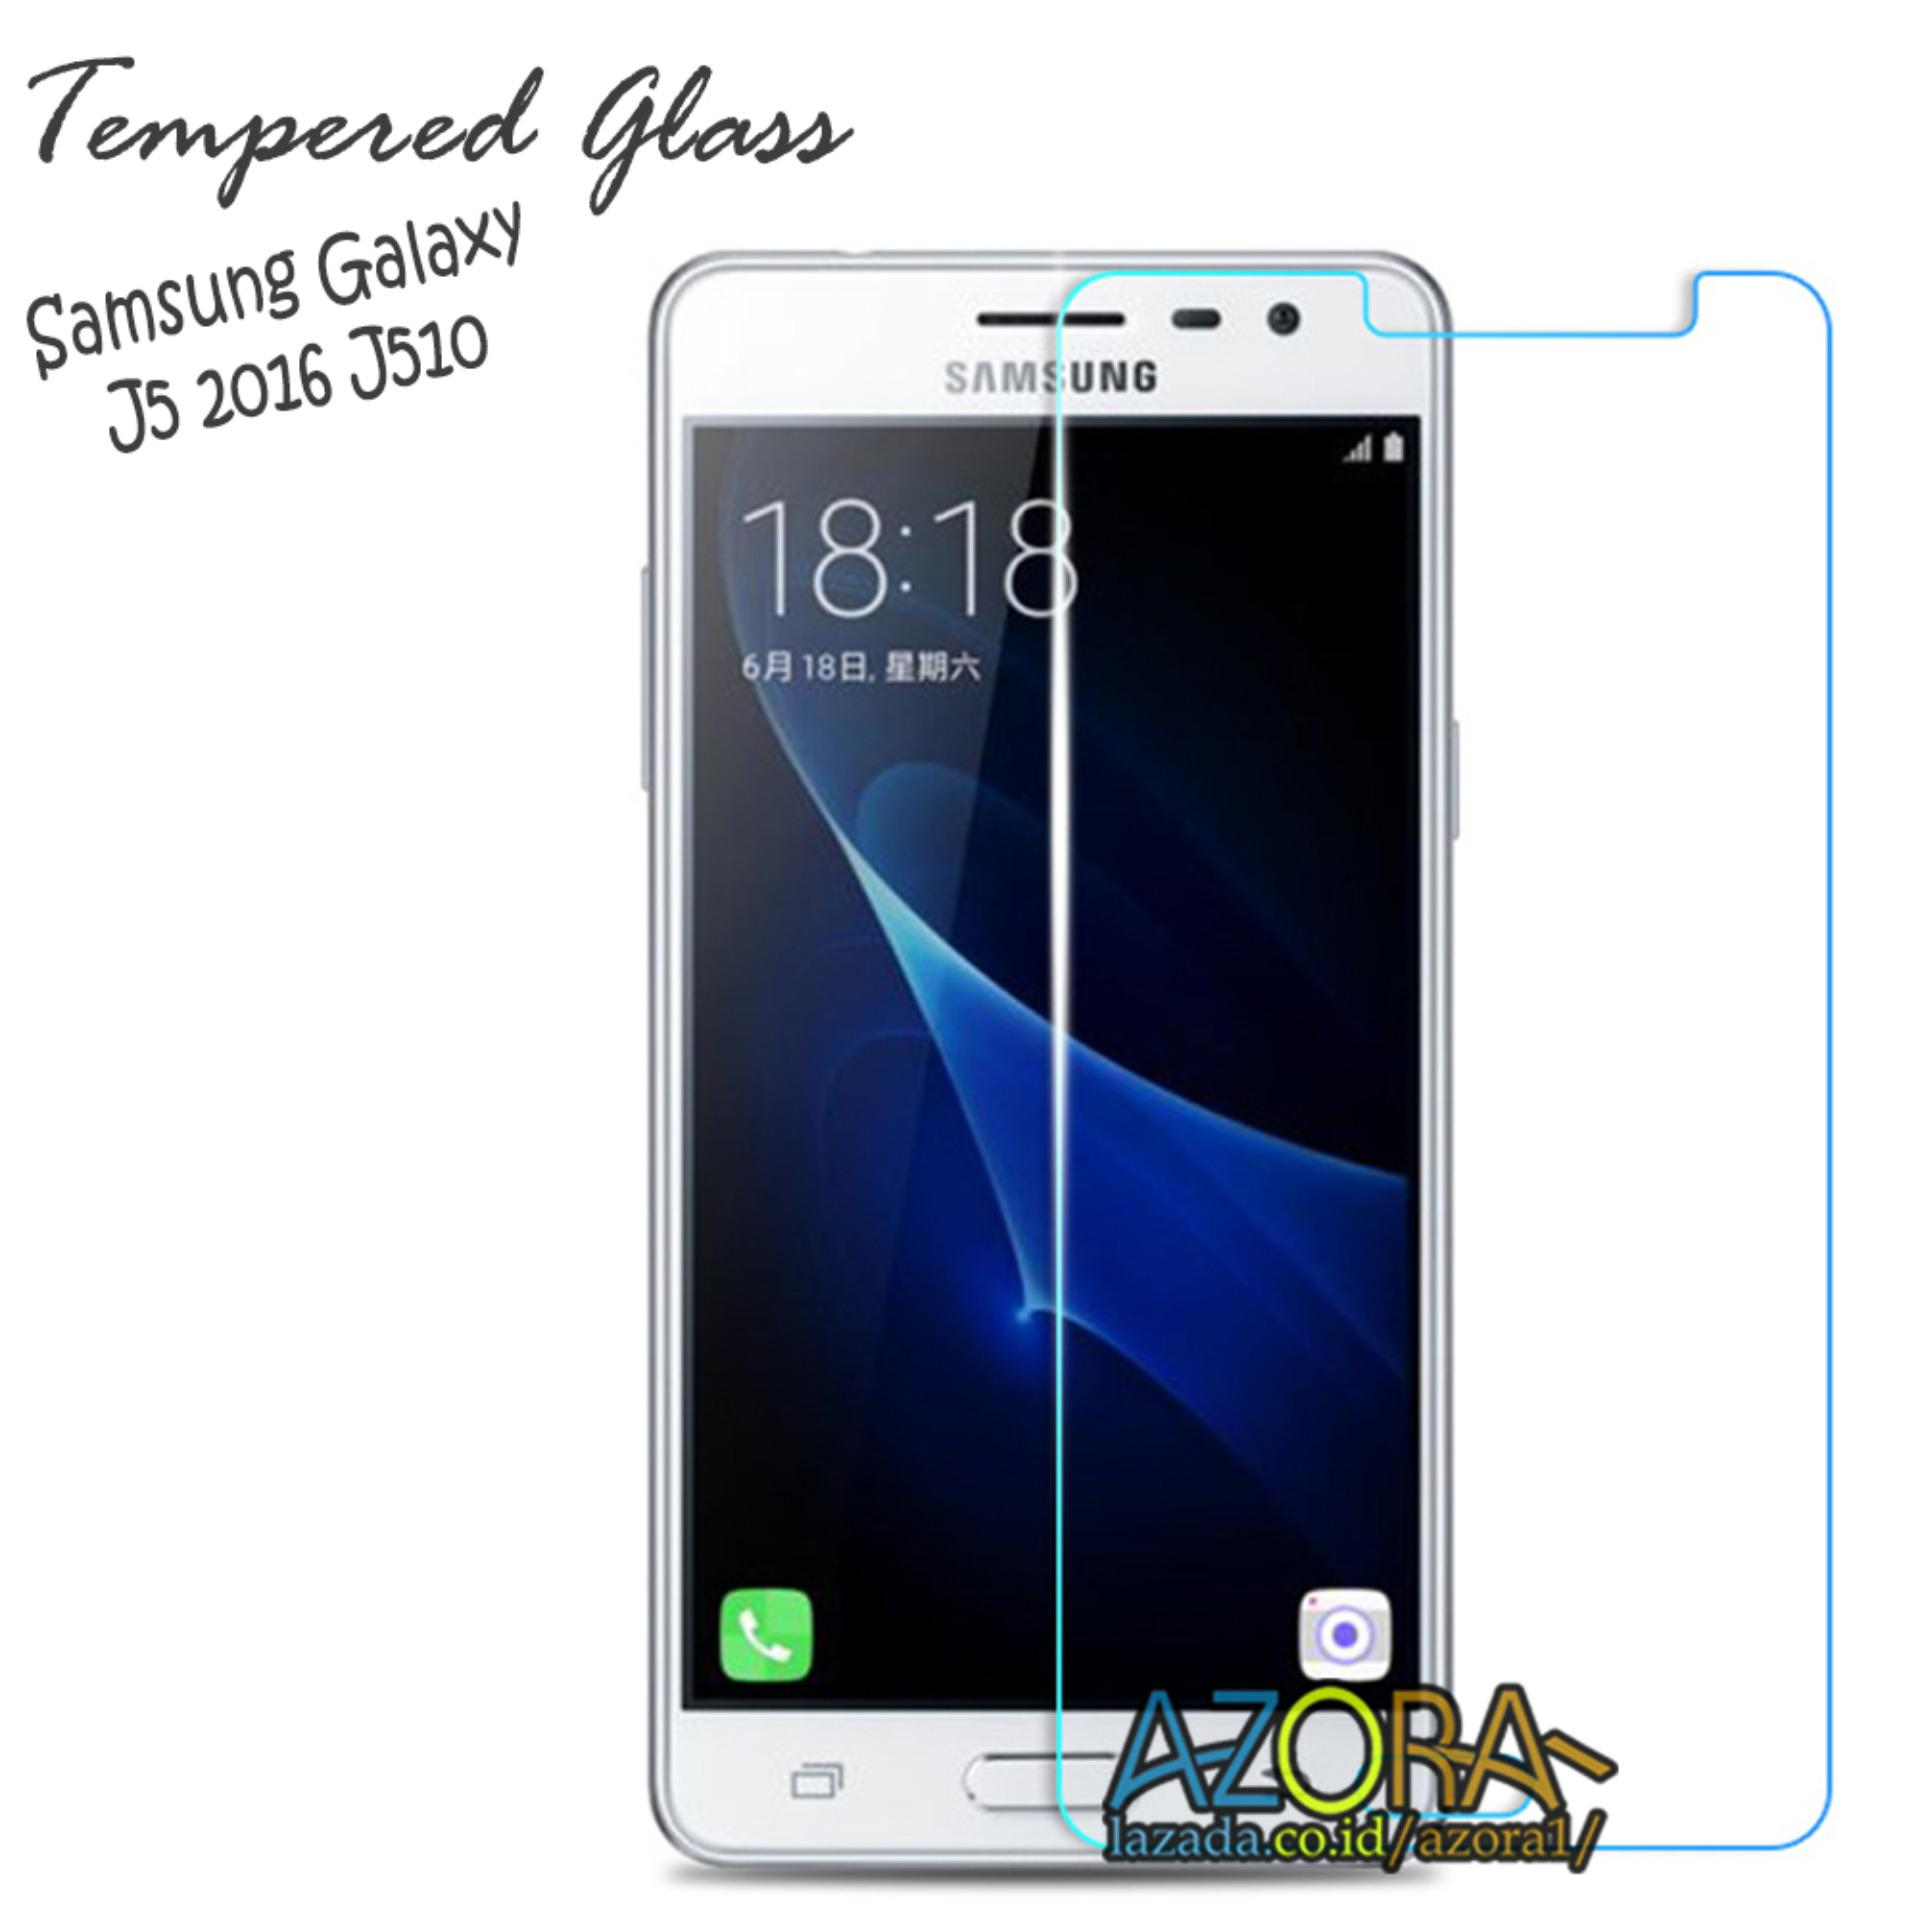 Tempered Glass Samsung Galaxy J5 2016 J510 Screen Protector Pelindung Layar Kaca Anti Gores - Bening